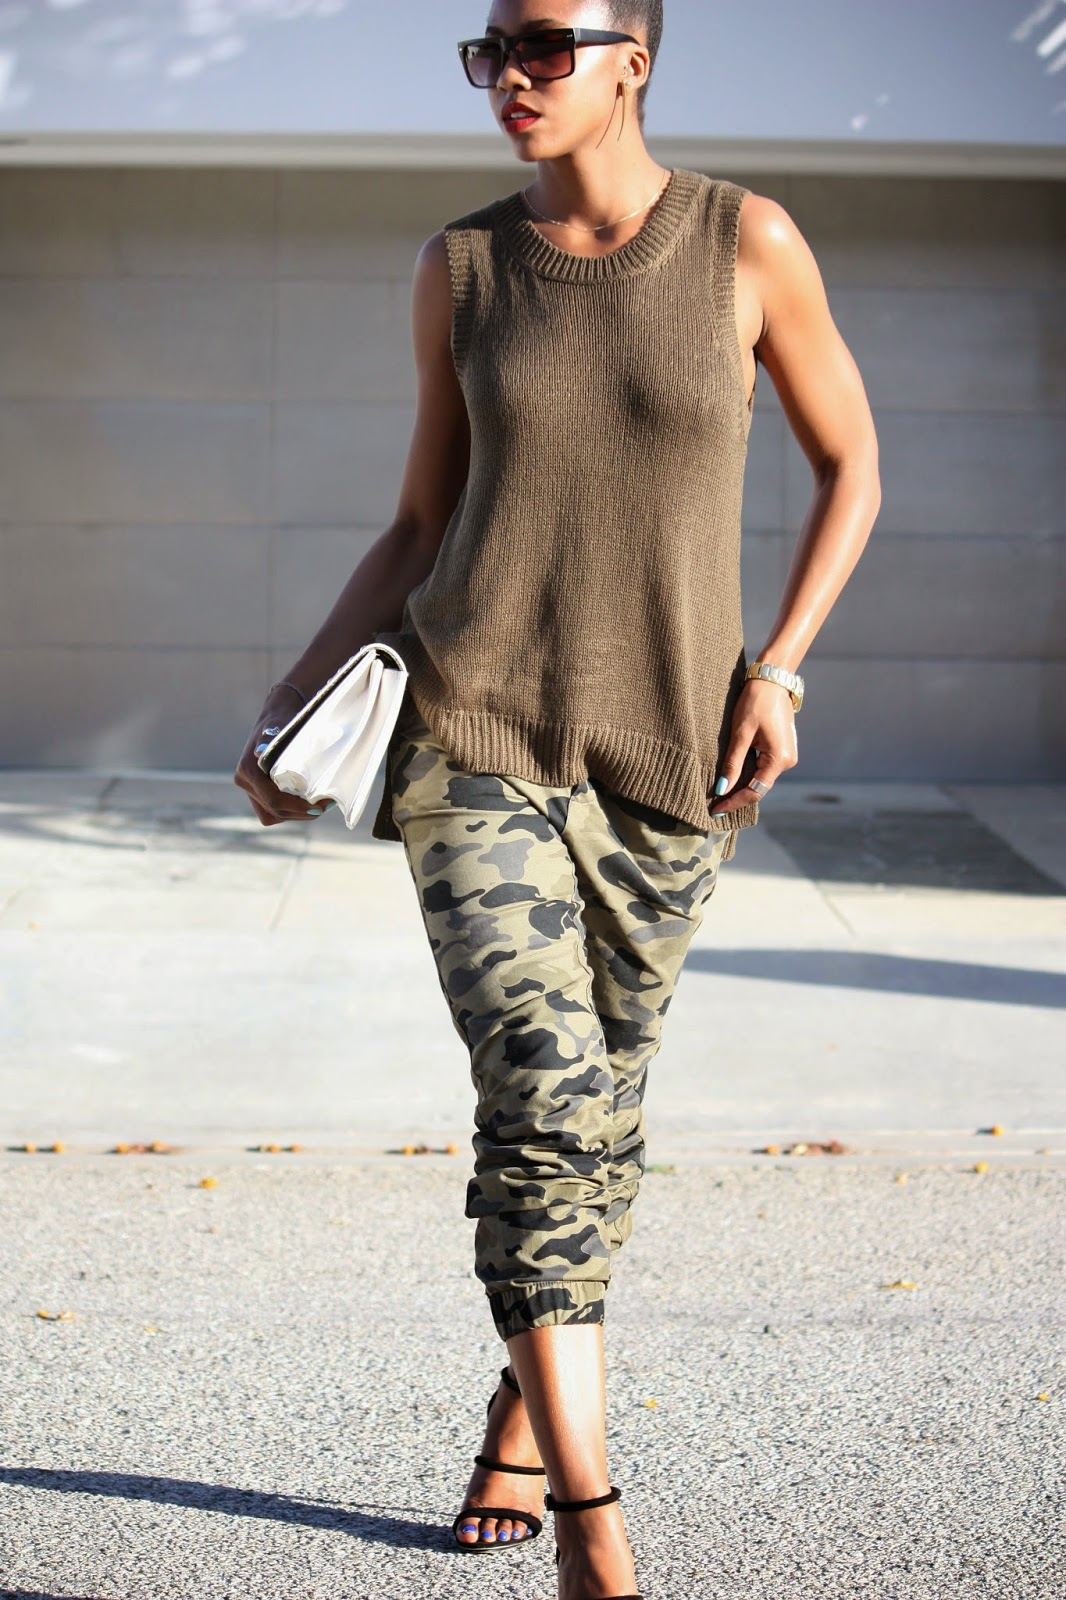 Wearing H&M khaki sleeveless knit vest, H&M mens camouflage pants and sunglasses, Forever 21 heeled sandals